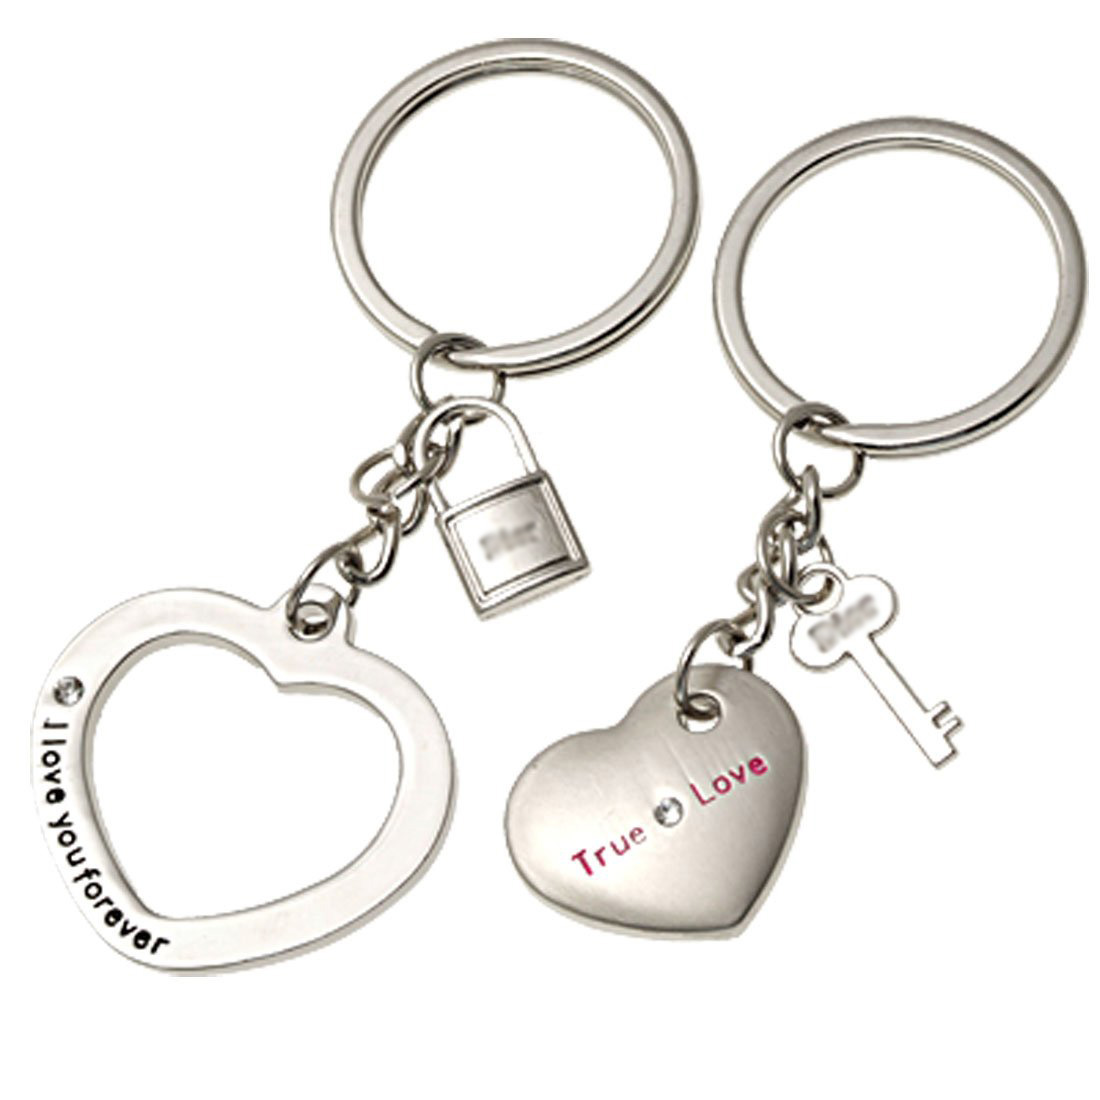 5 Pcs Wholesale Silvery Lovers Metal Key Chains Keychain Rings<br><br>Aliexpress